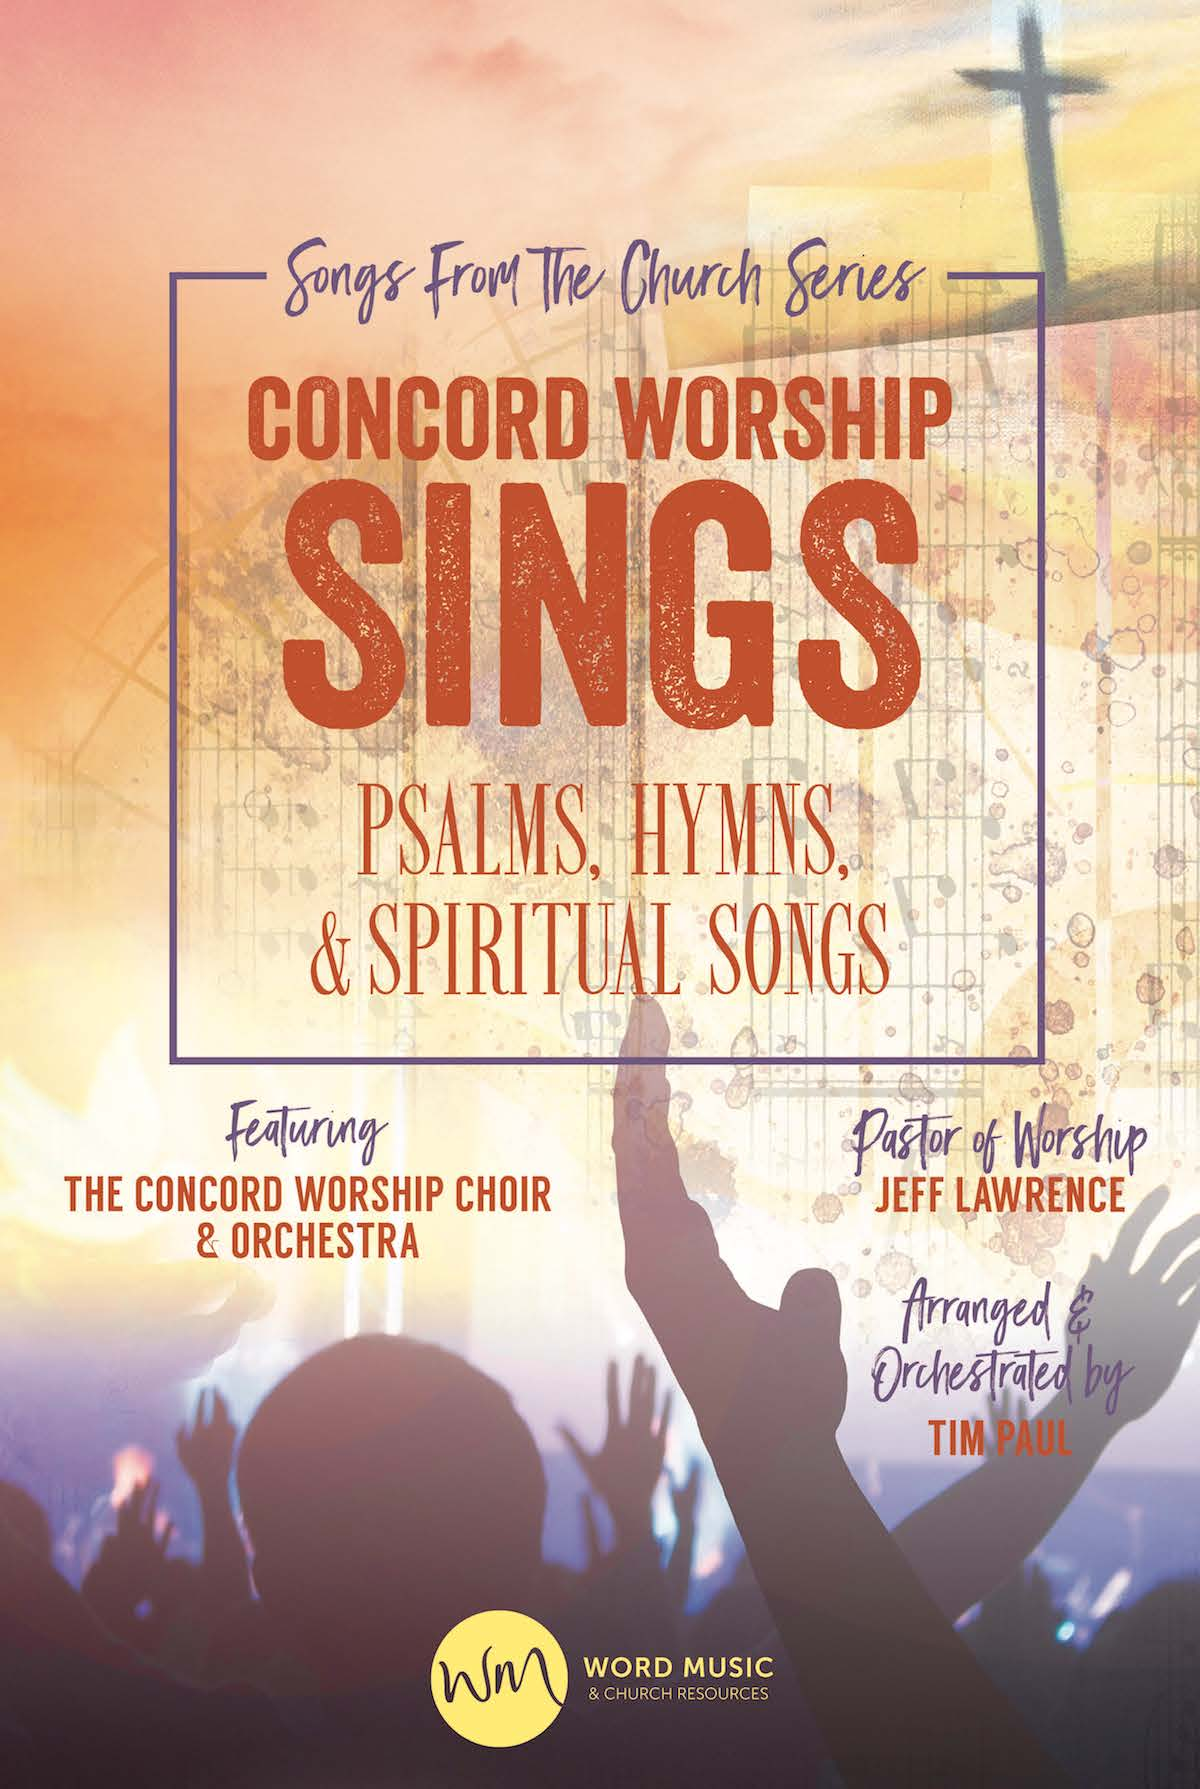 Concord Worship Sings